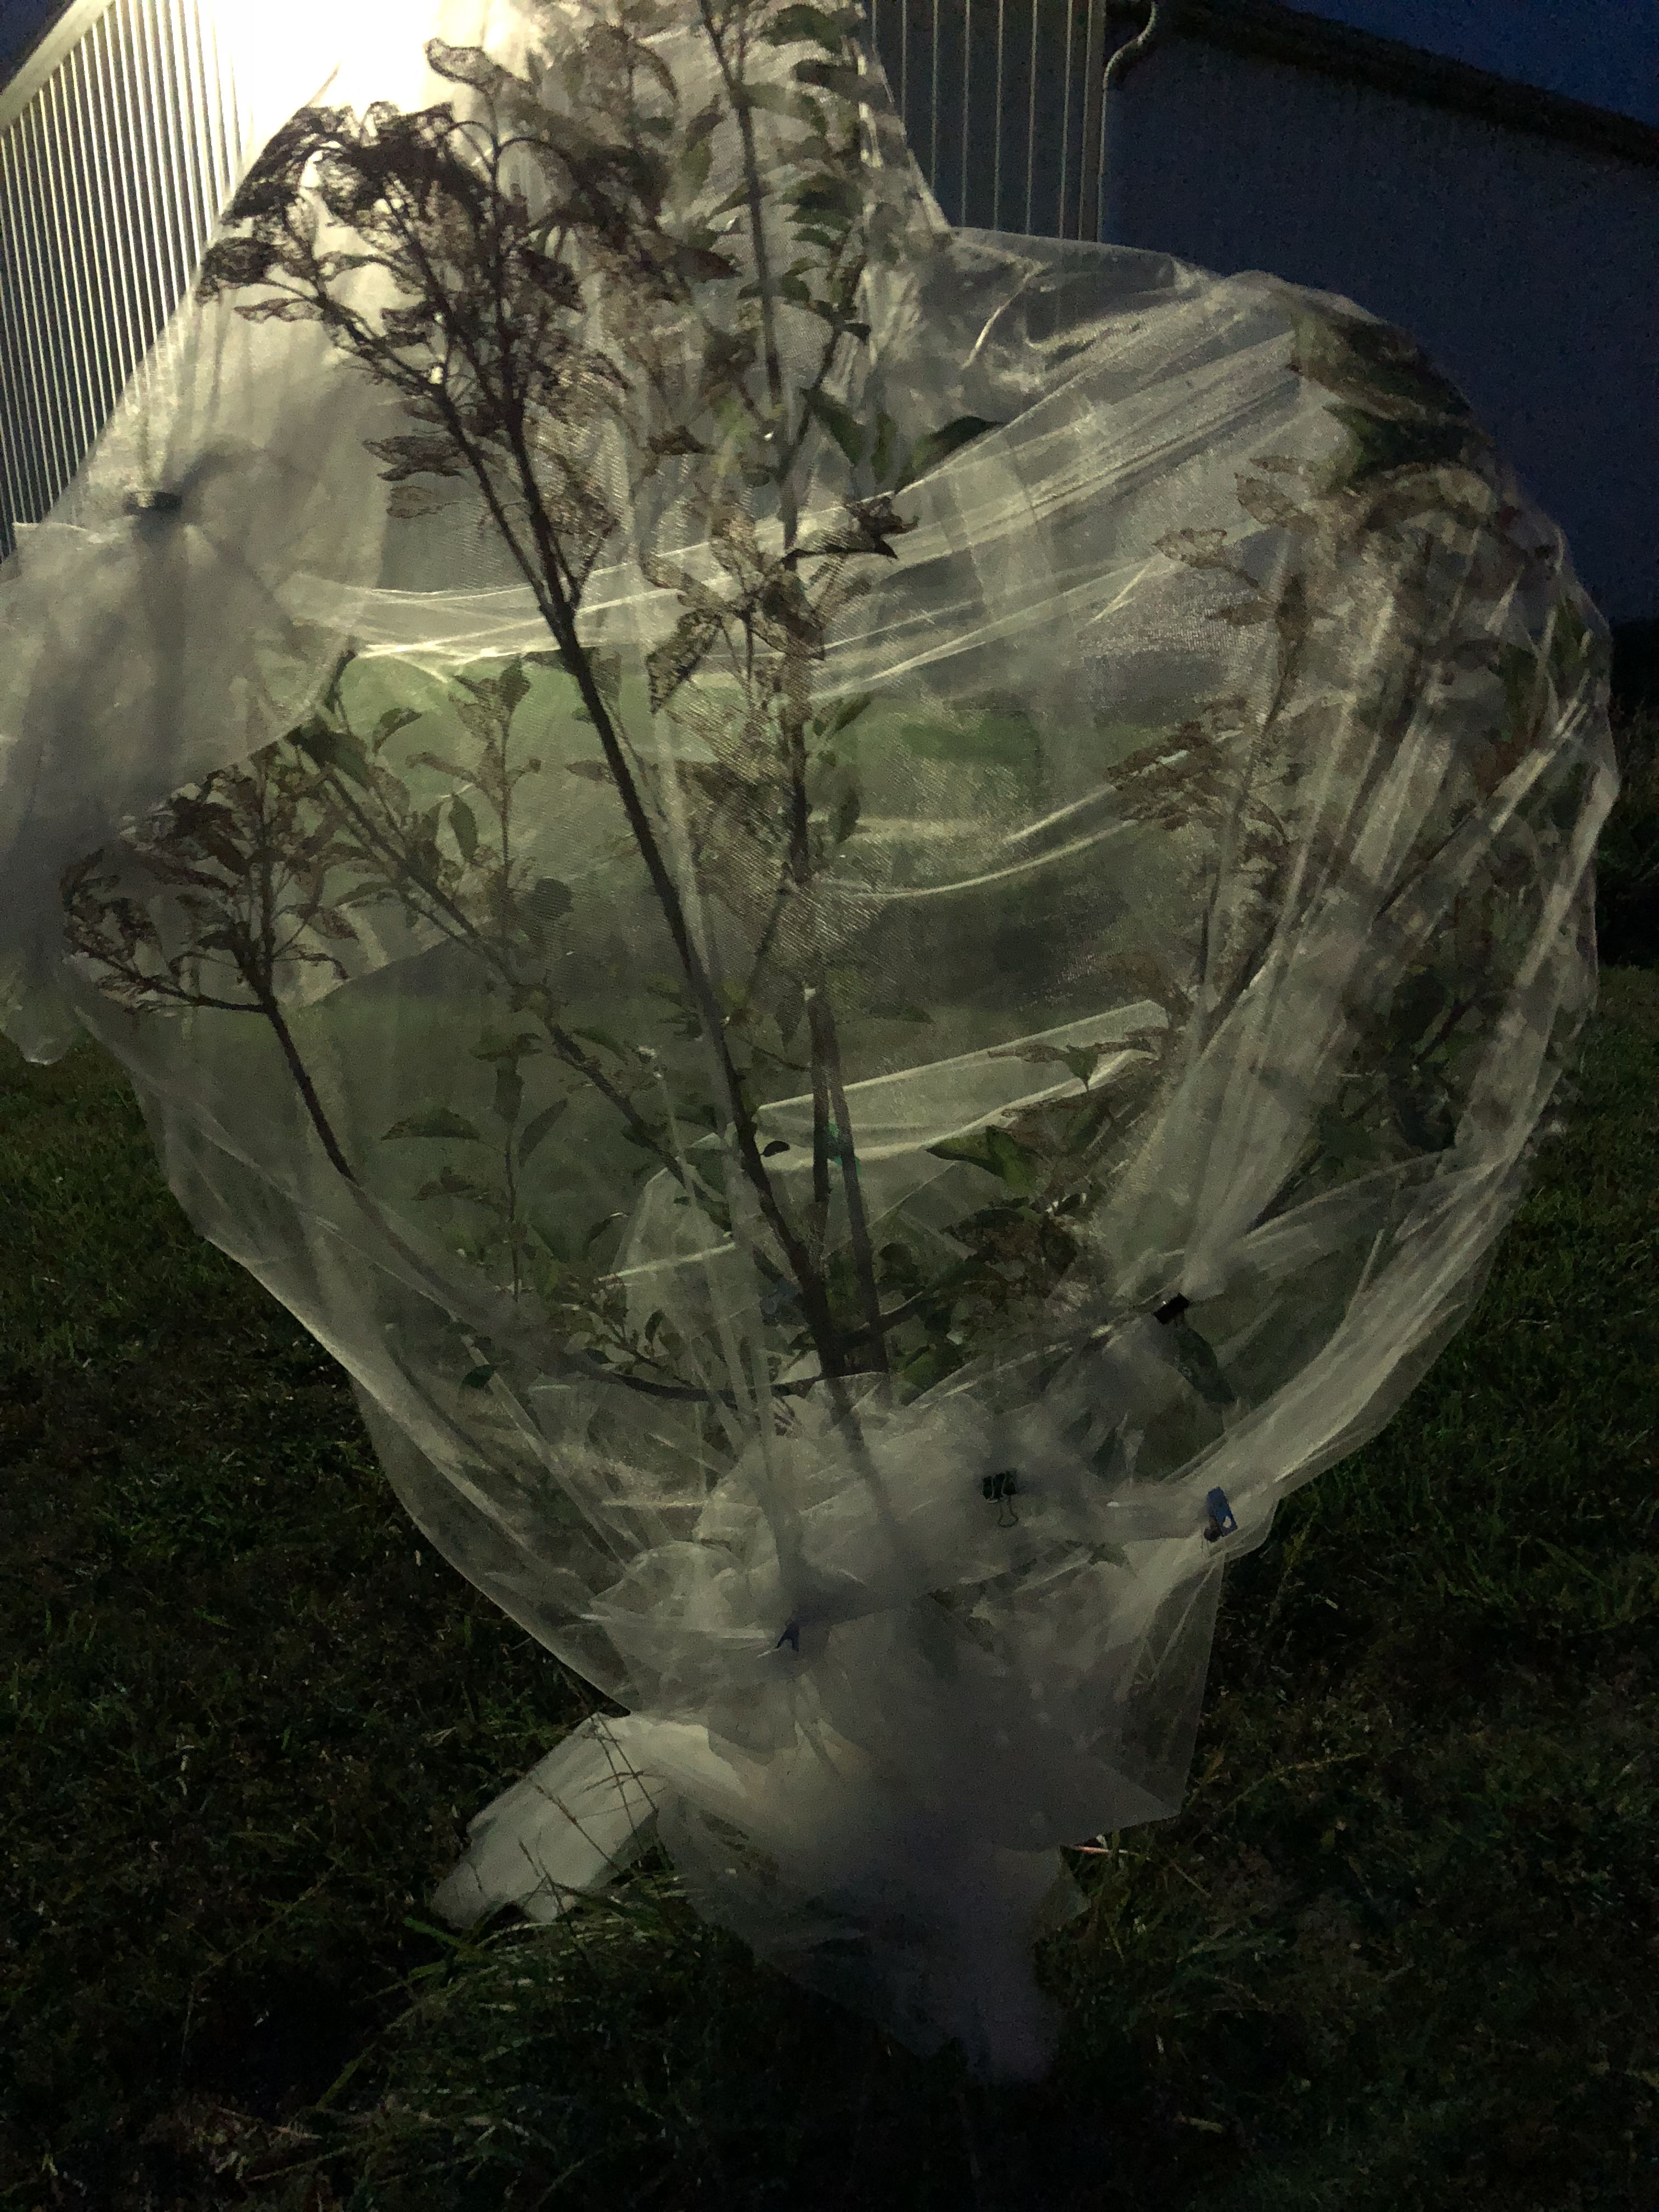 Covered our apple tree with tulle to protect from the